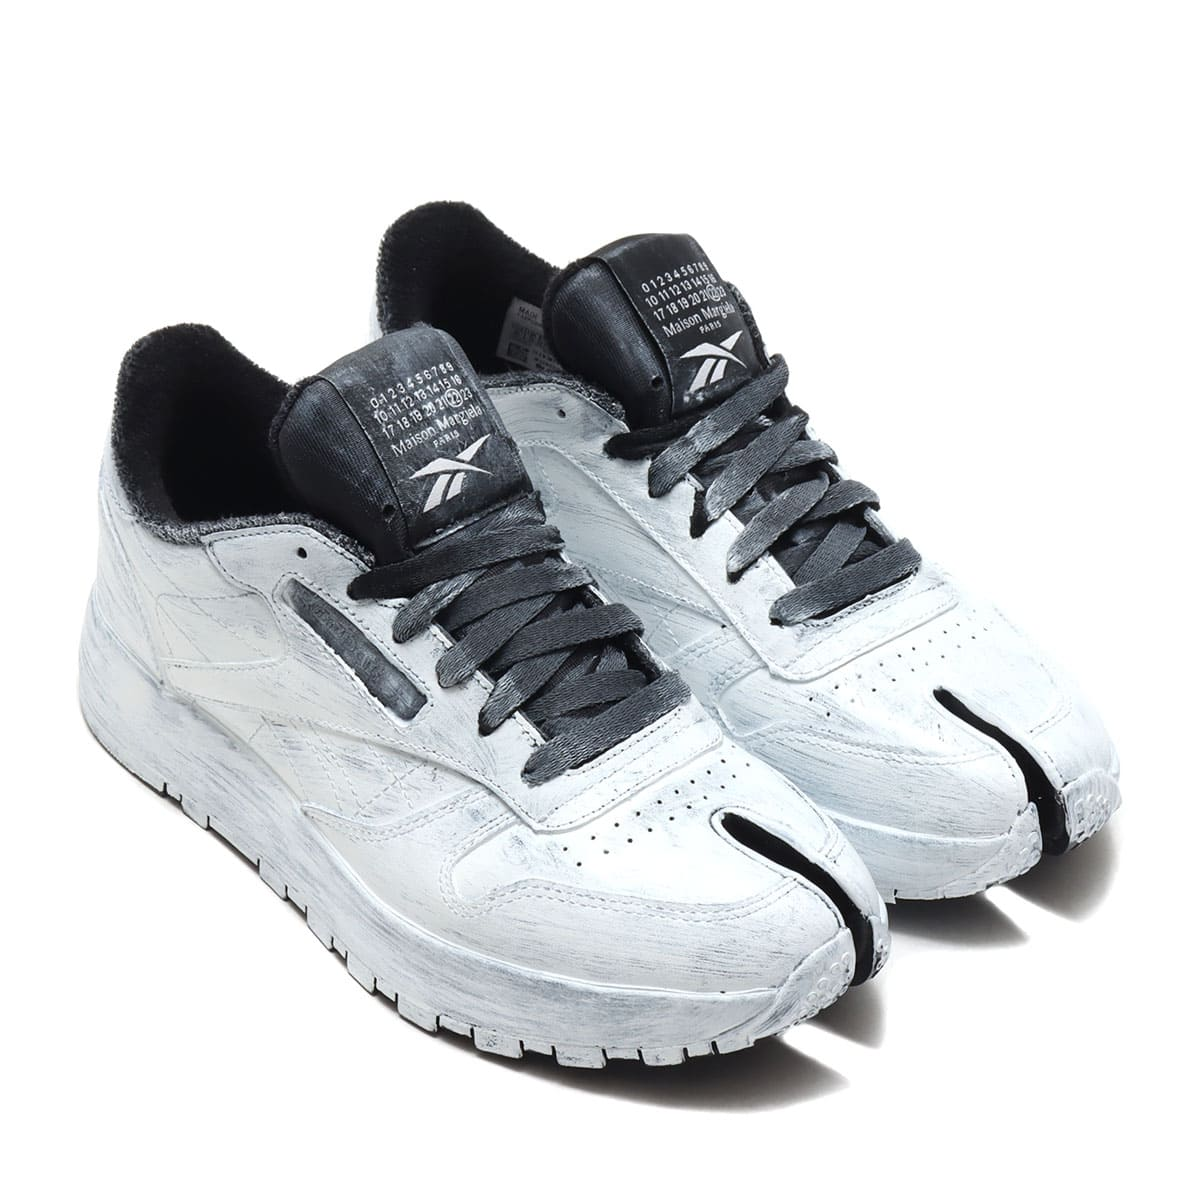 Reebok Maison Margiela PROJECT 0 CL BLACK/WHITE/BLACK 21SS-S_photo_large